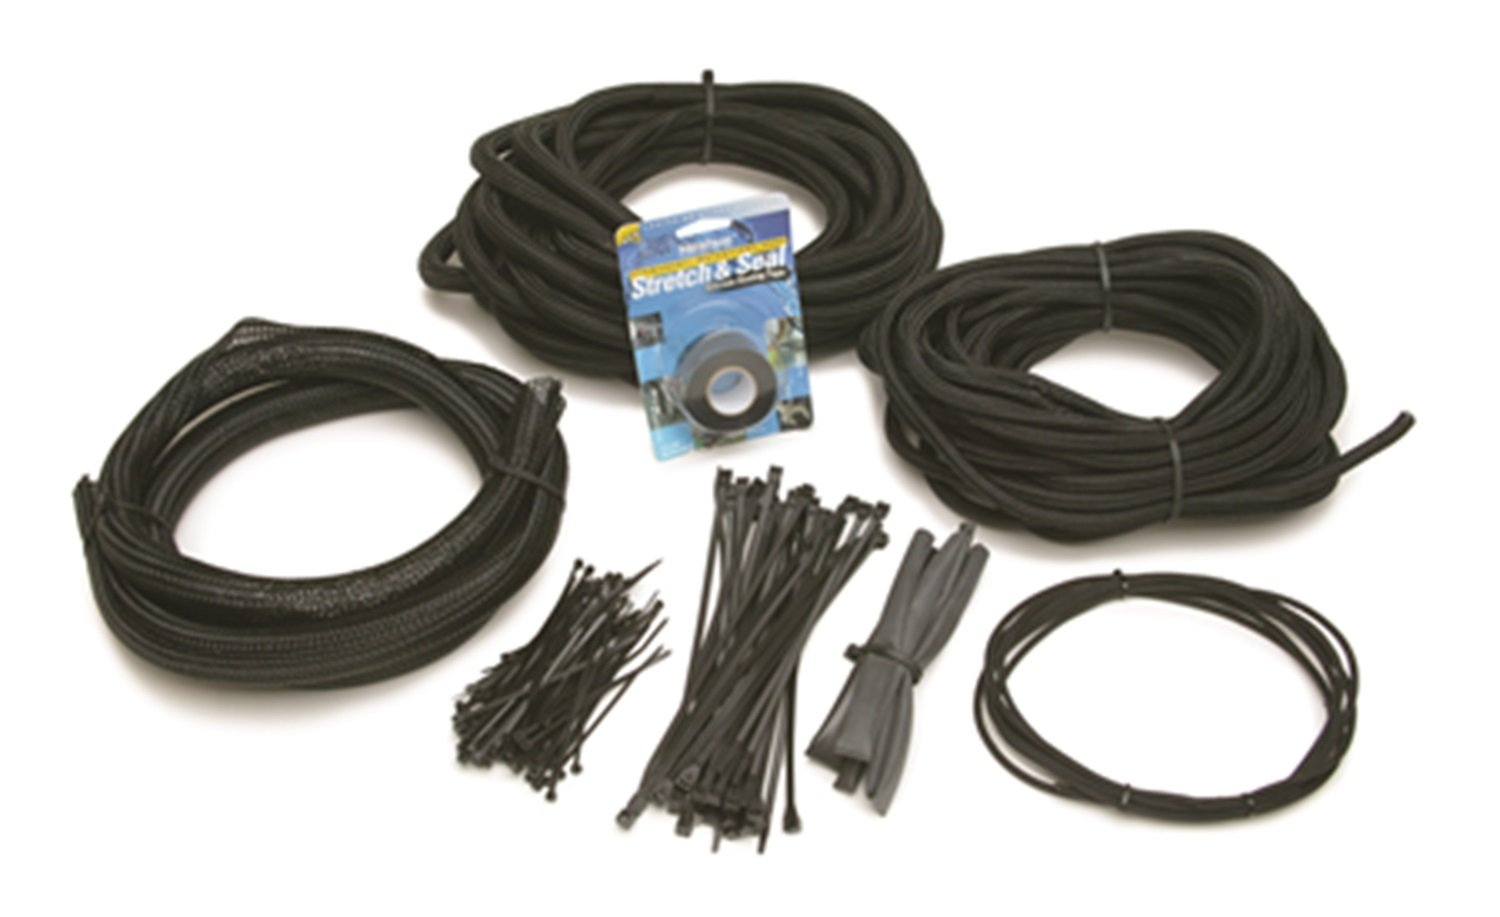 61KfhP ZlhL._SL1500_ amazon com painless wiring 70920 power braid chassis kit automotive painless wiring harness rebate at mifinder.co